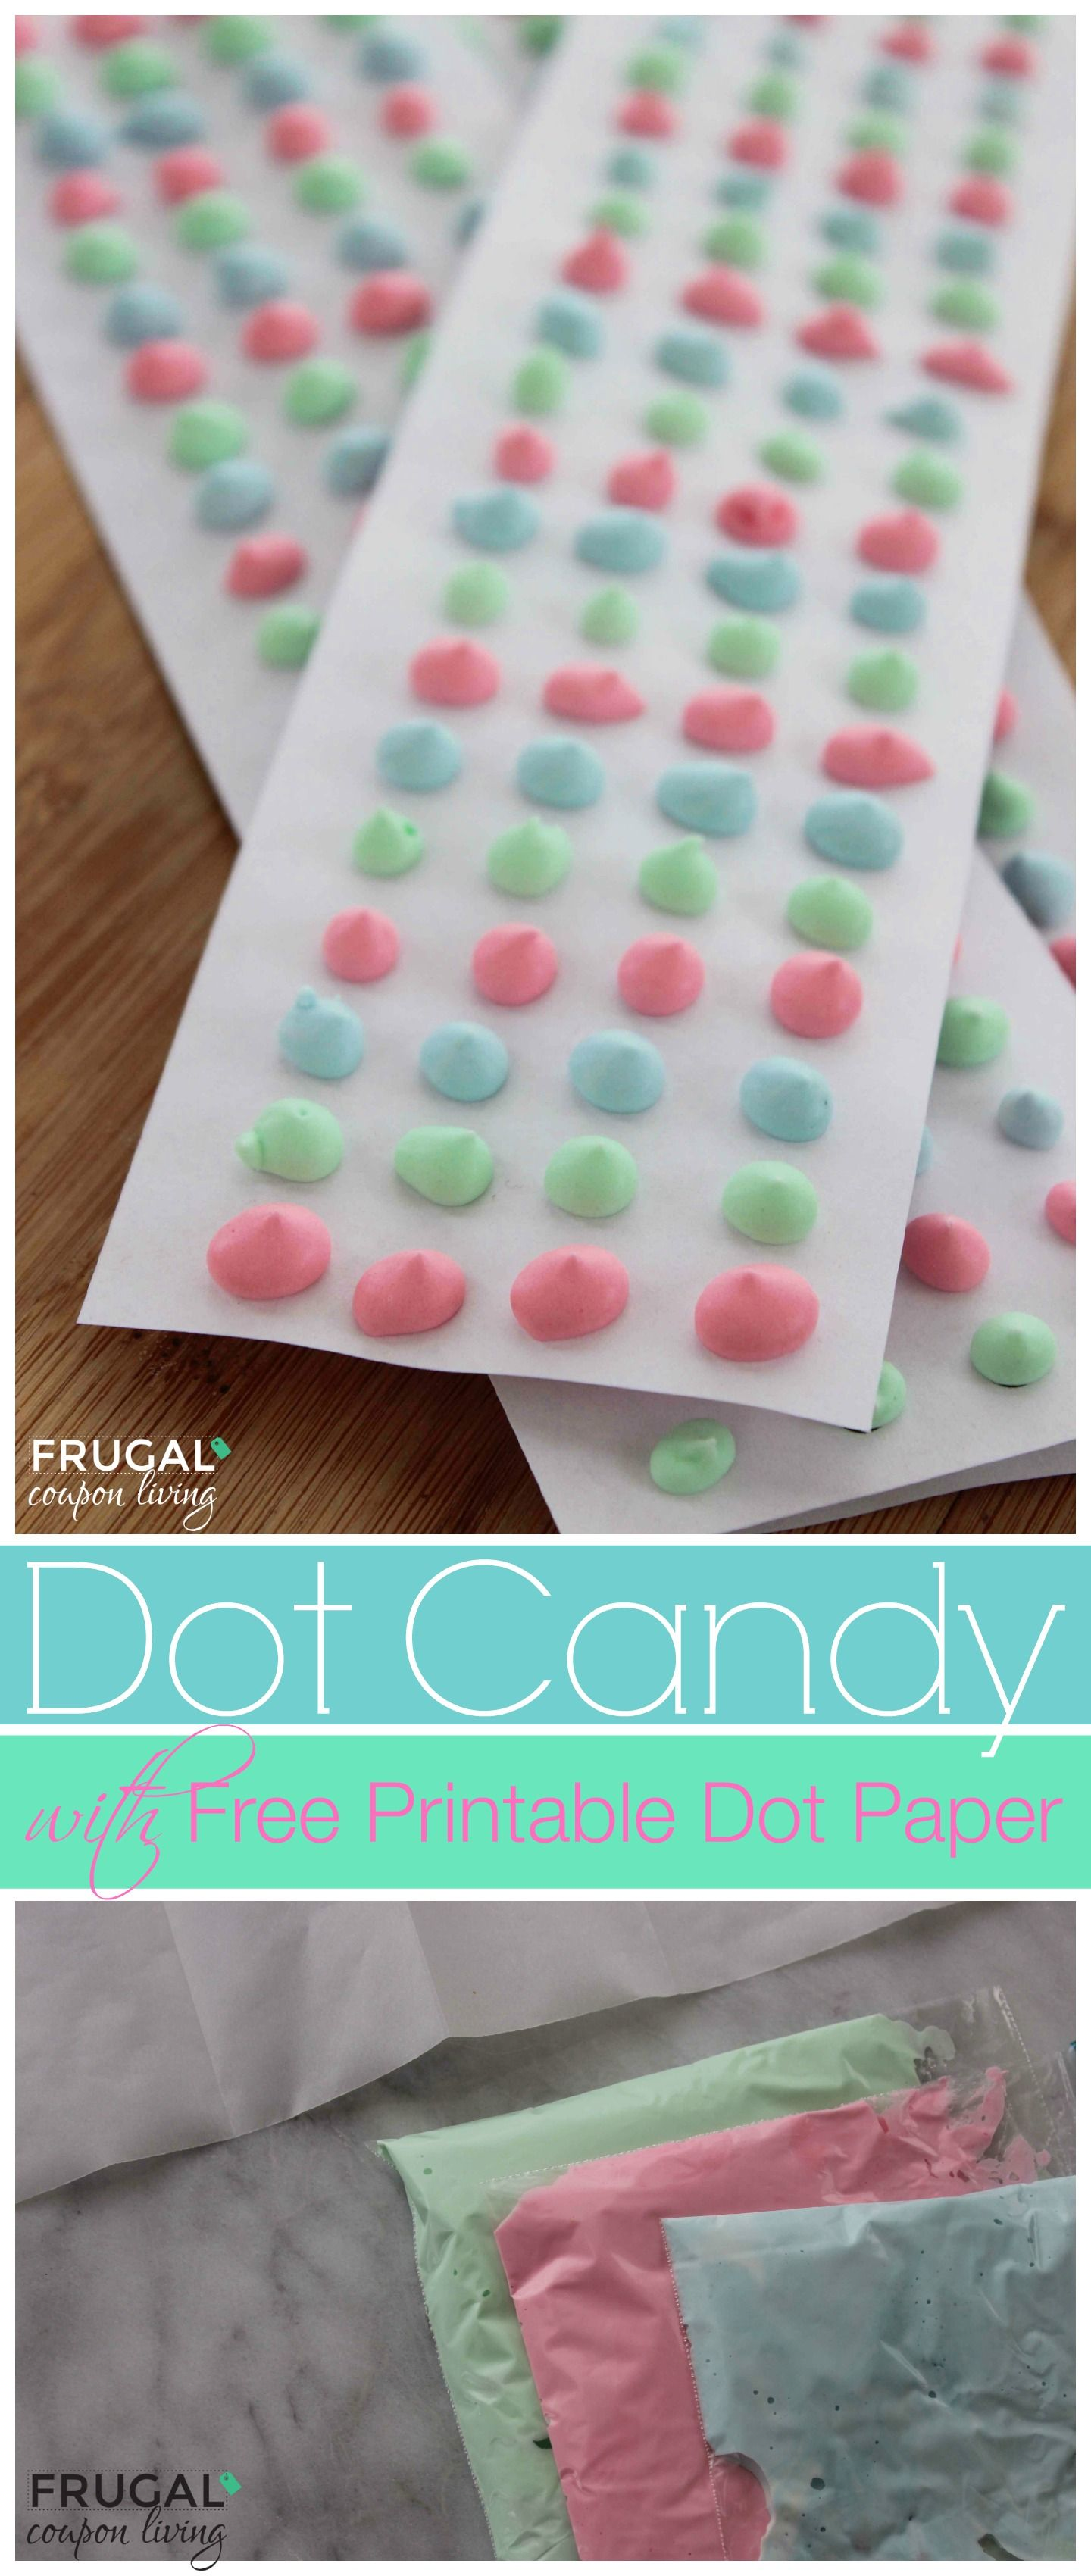 Candy Dot Tutorial And Recipe With Free Dot Paper Template  Dots